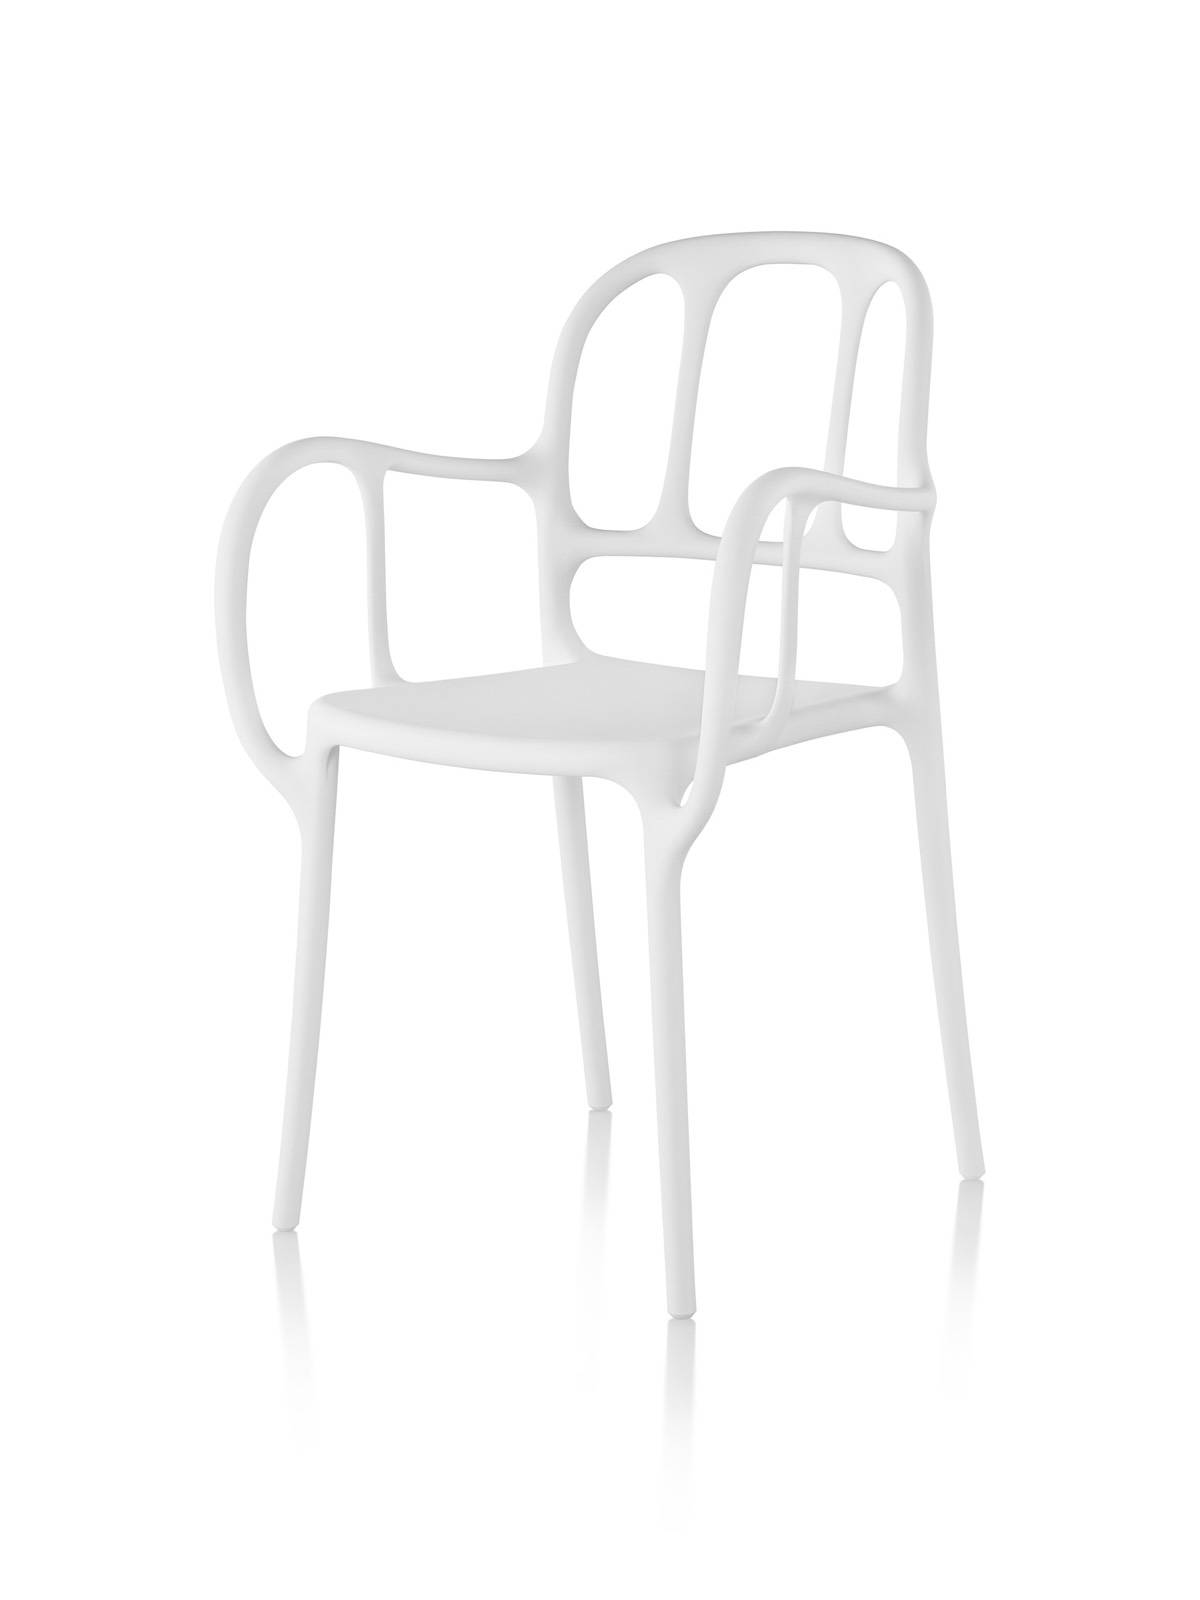 White Magis Milà side chair, viewed from a 45-degree angle.